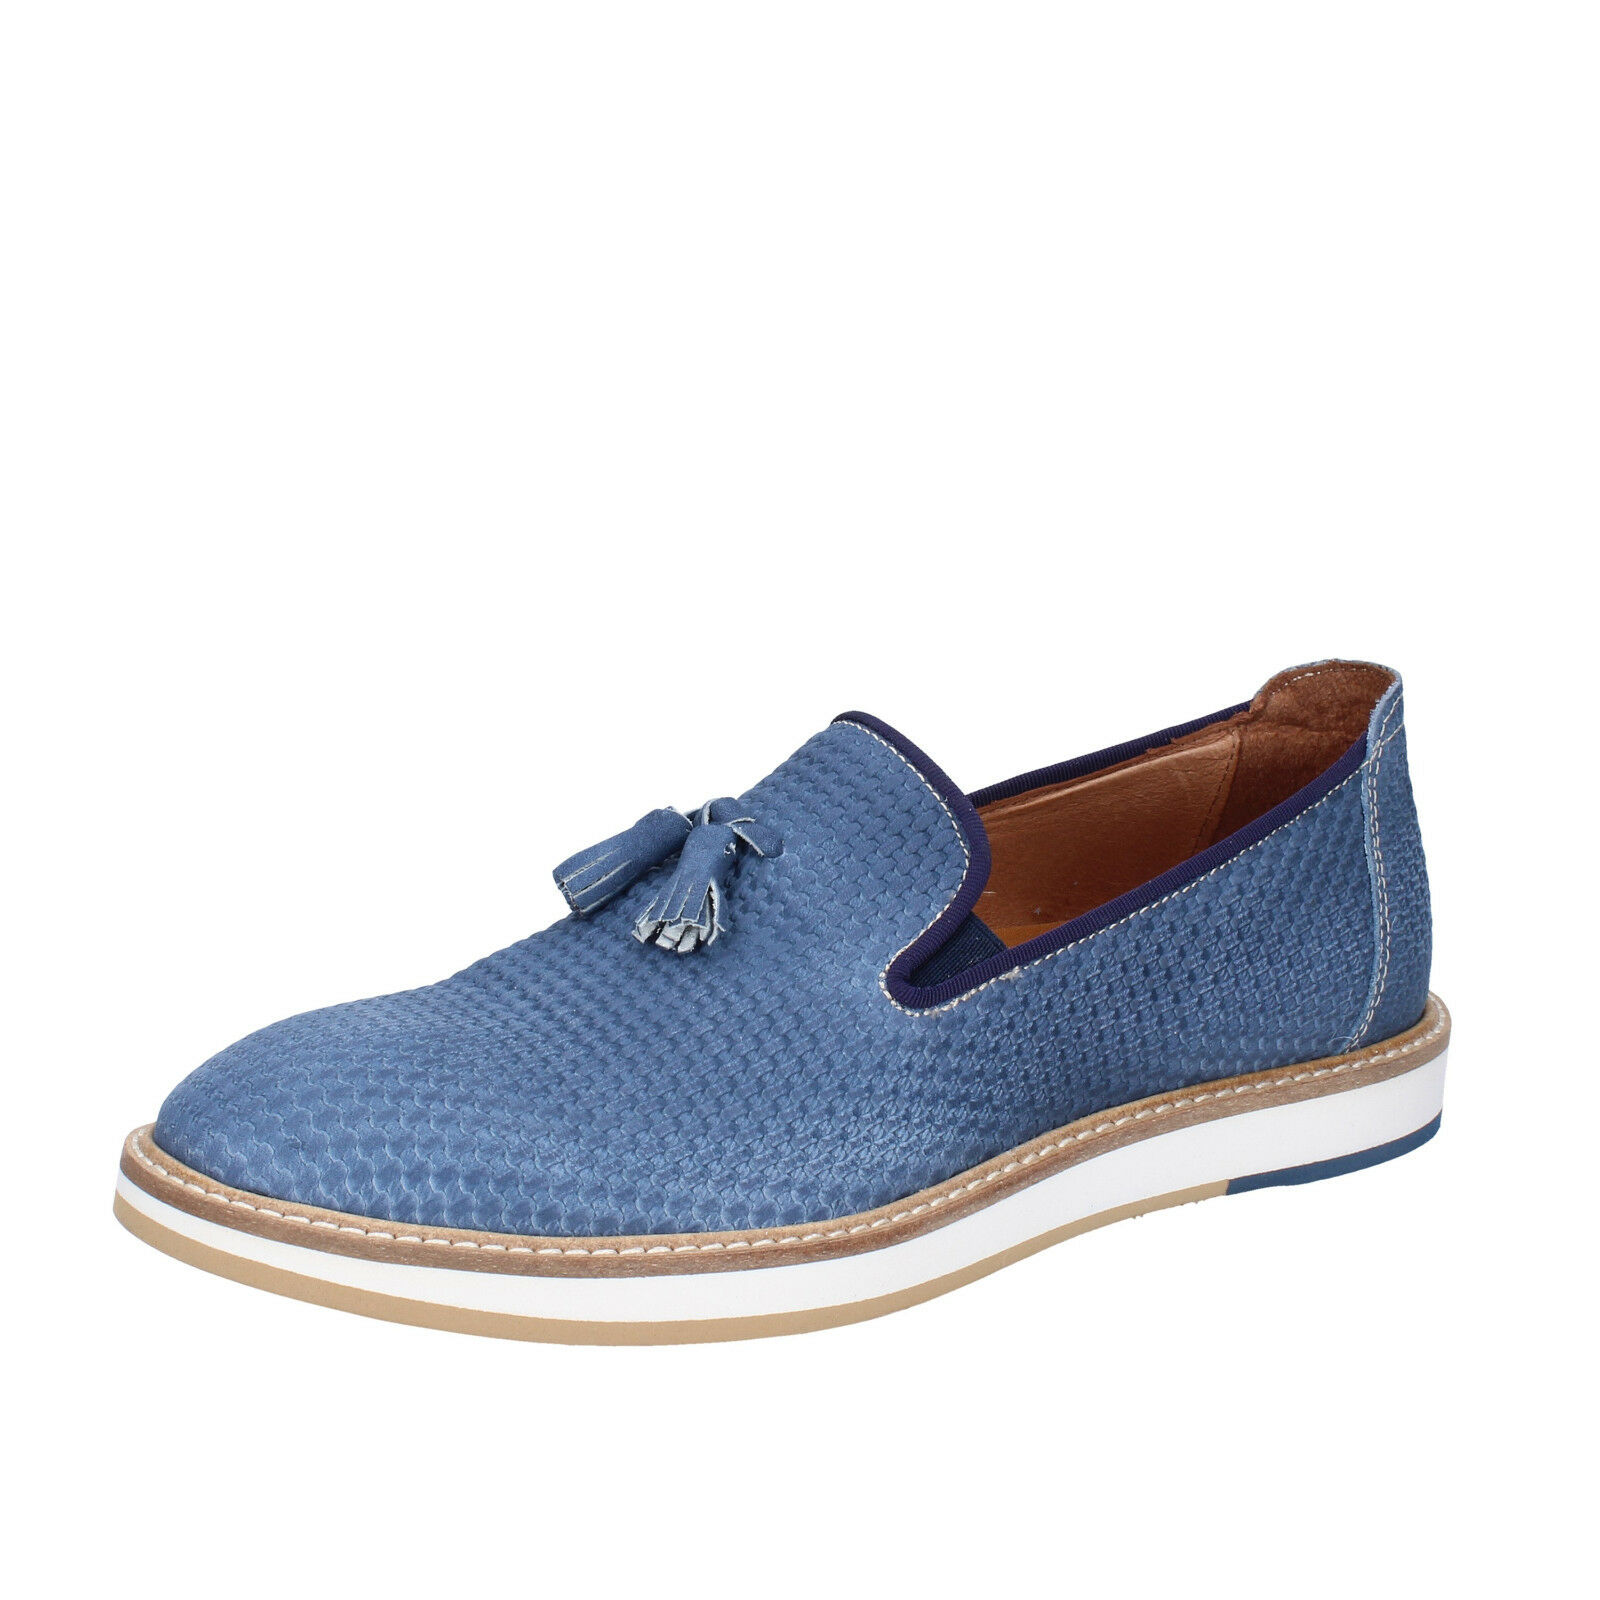 Mens shoes +2 MADE IN ITALY 8 () loafers elegant bluee nabuk BT696-42